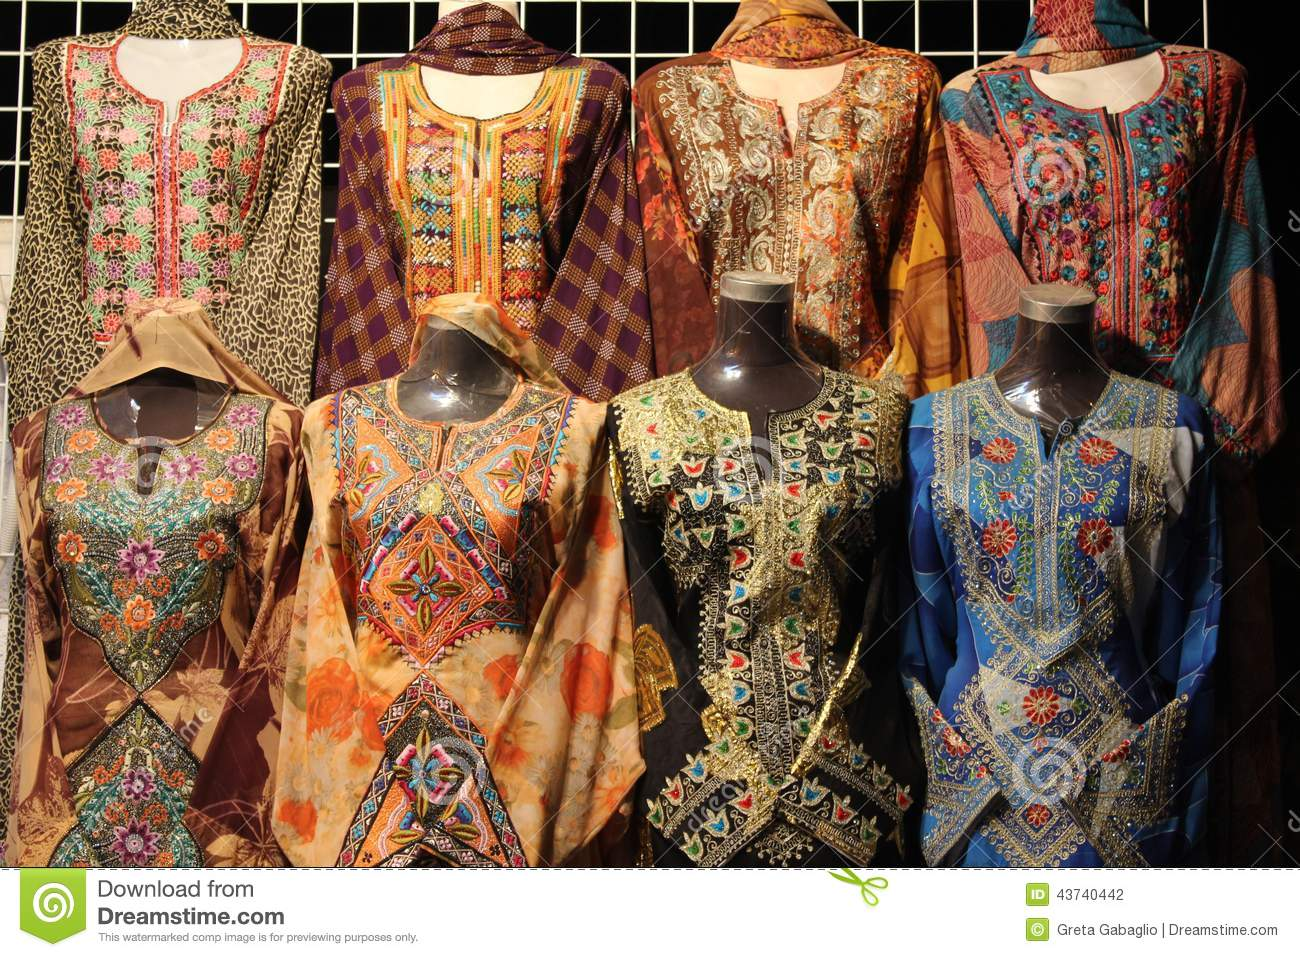 ... women omani dresses showed in a shop in Muscat, the Oman capital